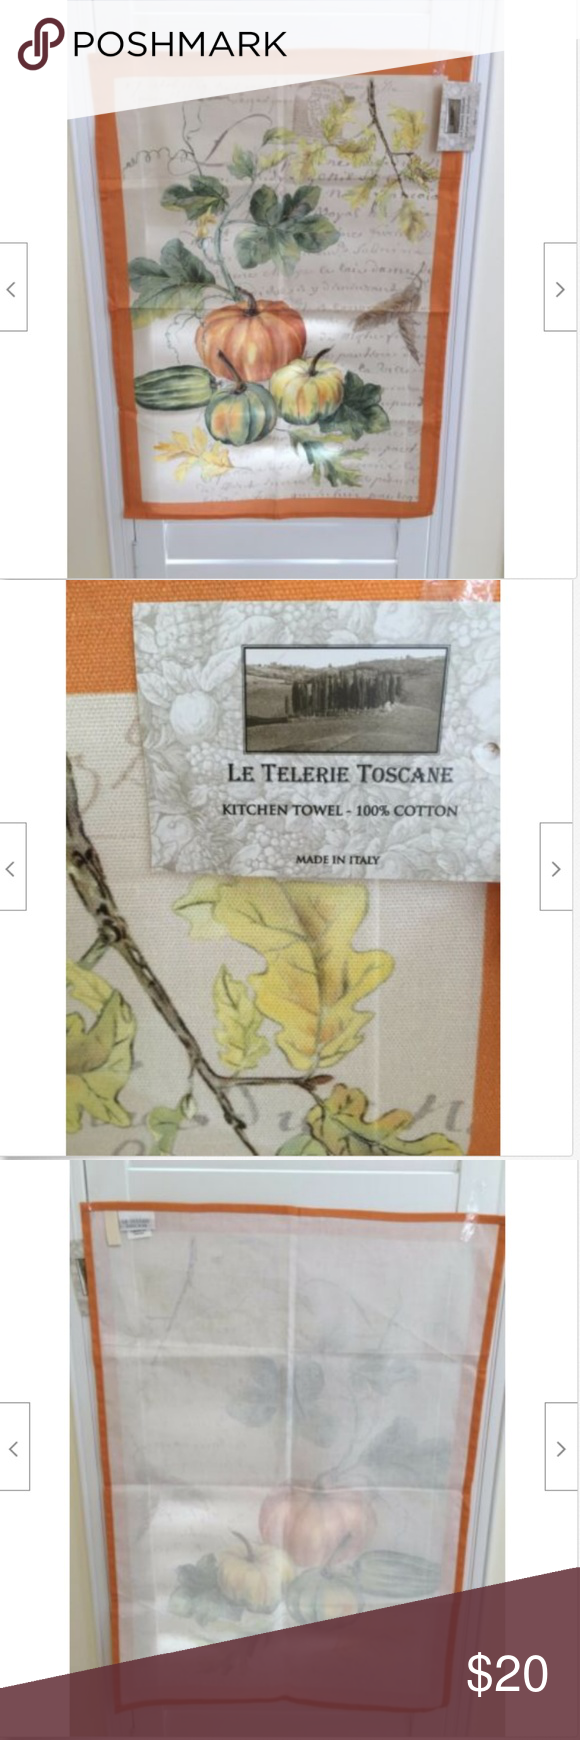 Le Telerie Toscane Made In Italy Kitchen Towel Kitchen Towels